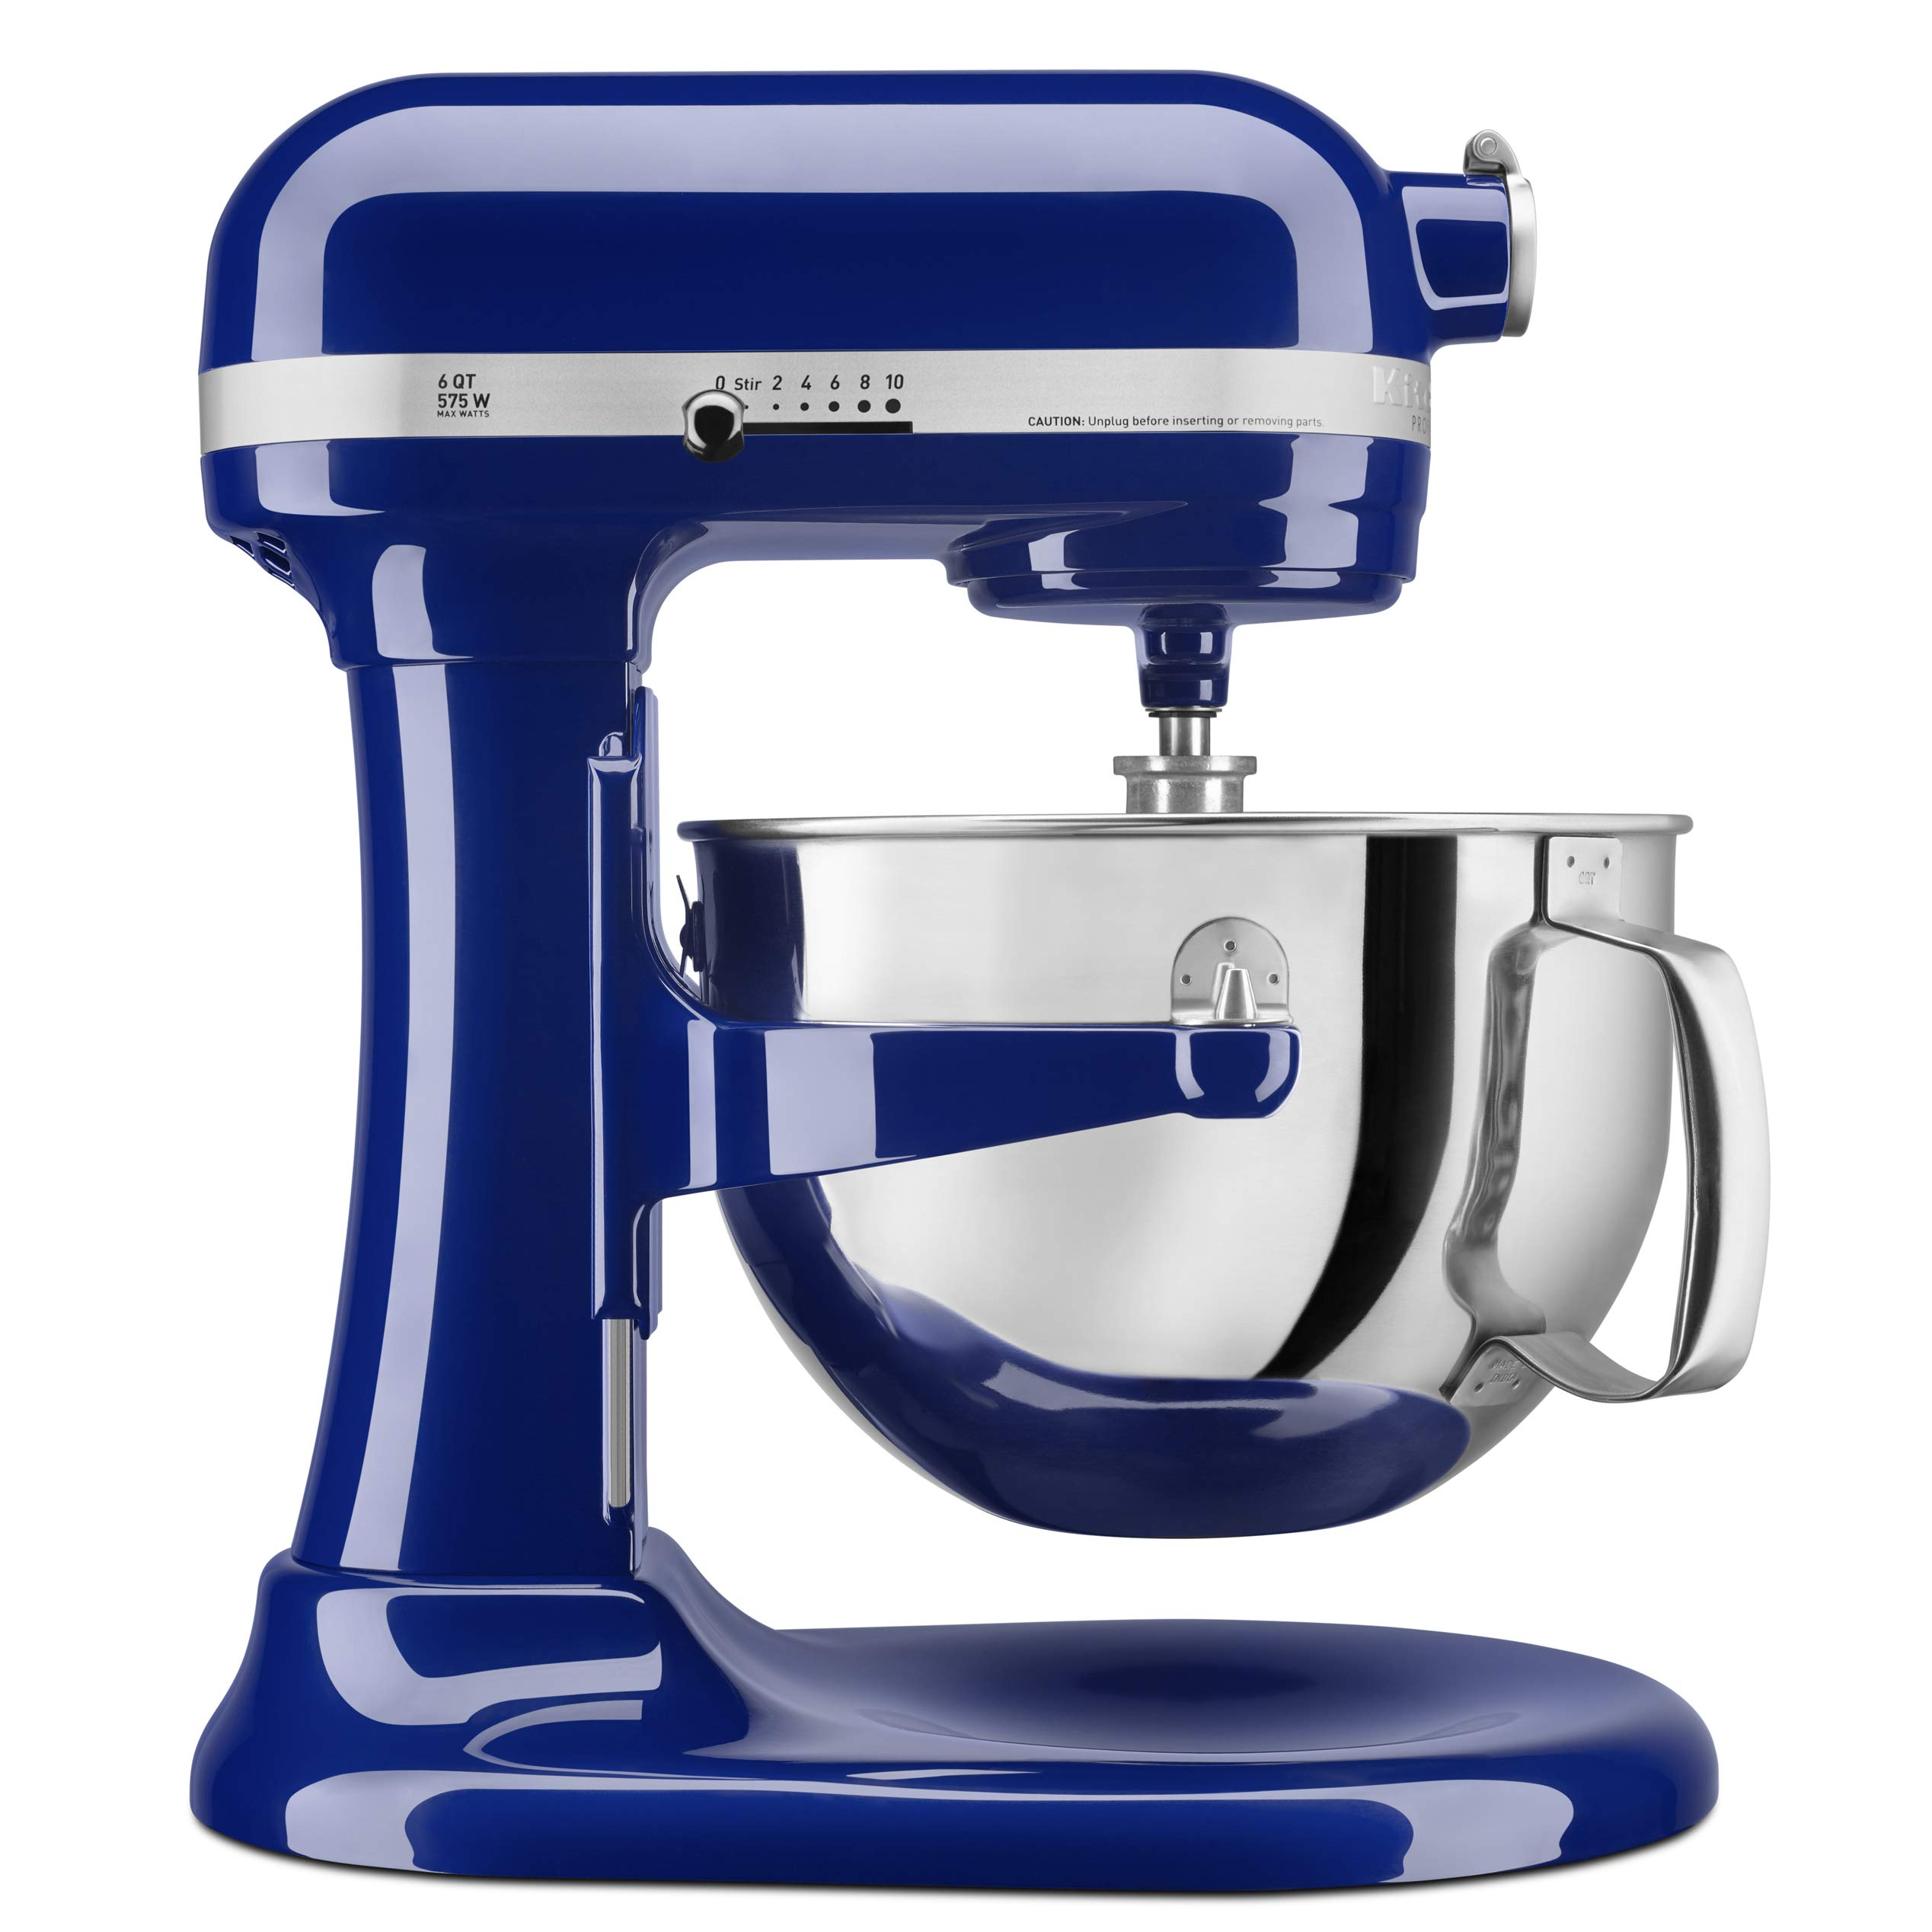 KitchenAid KP26M1XBU 6 Qt. Professional 600 Series Bowl-Lift Stand Mixer - Cobalt Blue by KitchenAid